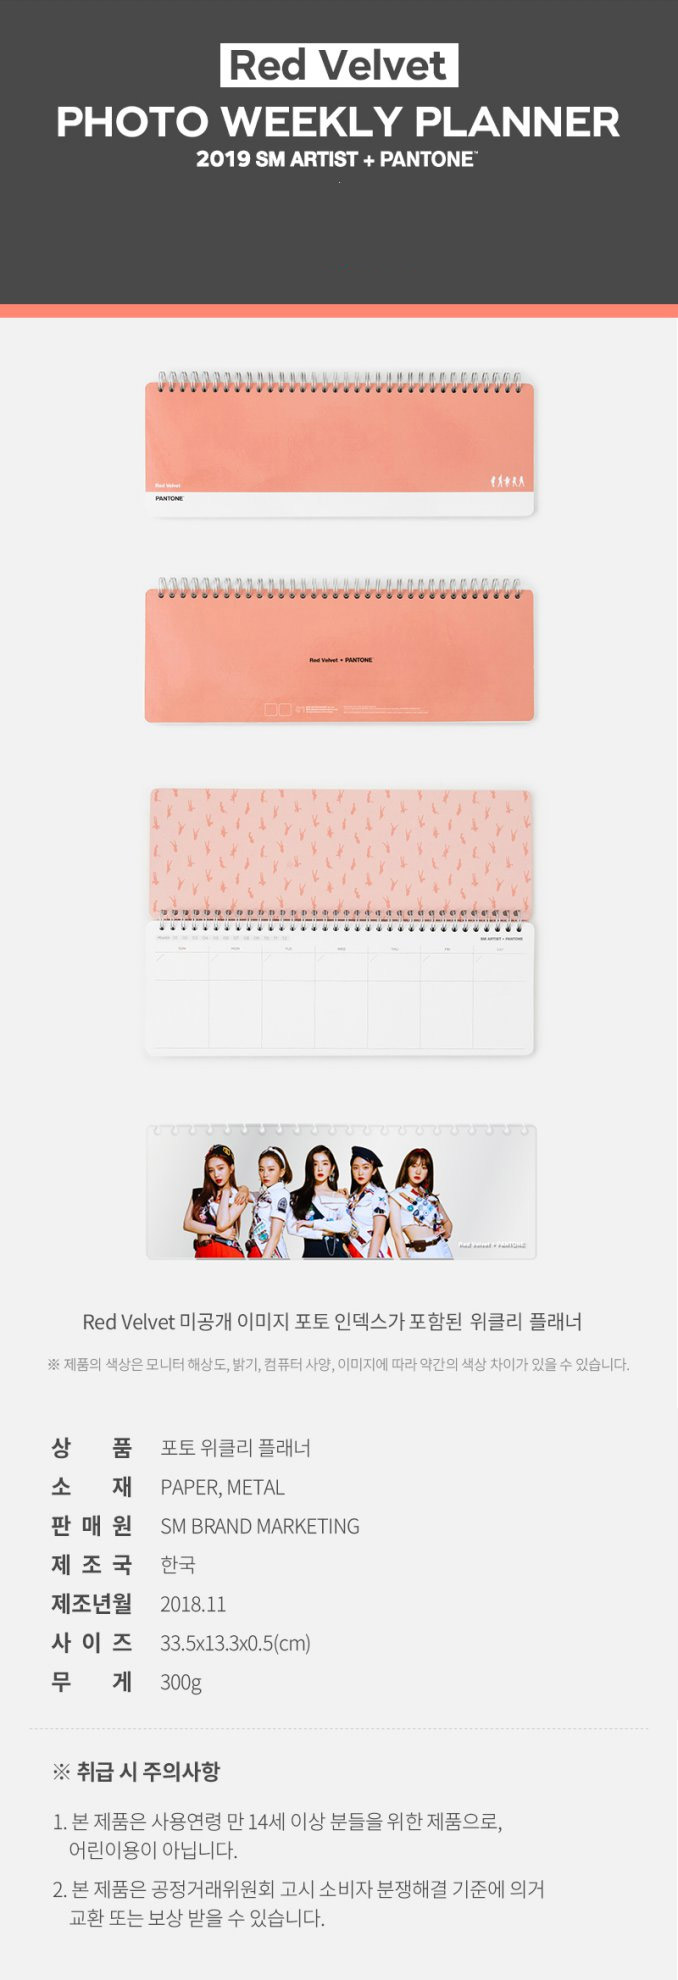 RED VELVET PANTONE Goods - Photo Weekly Planner